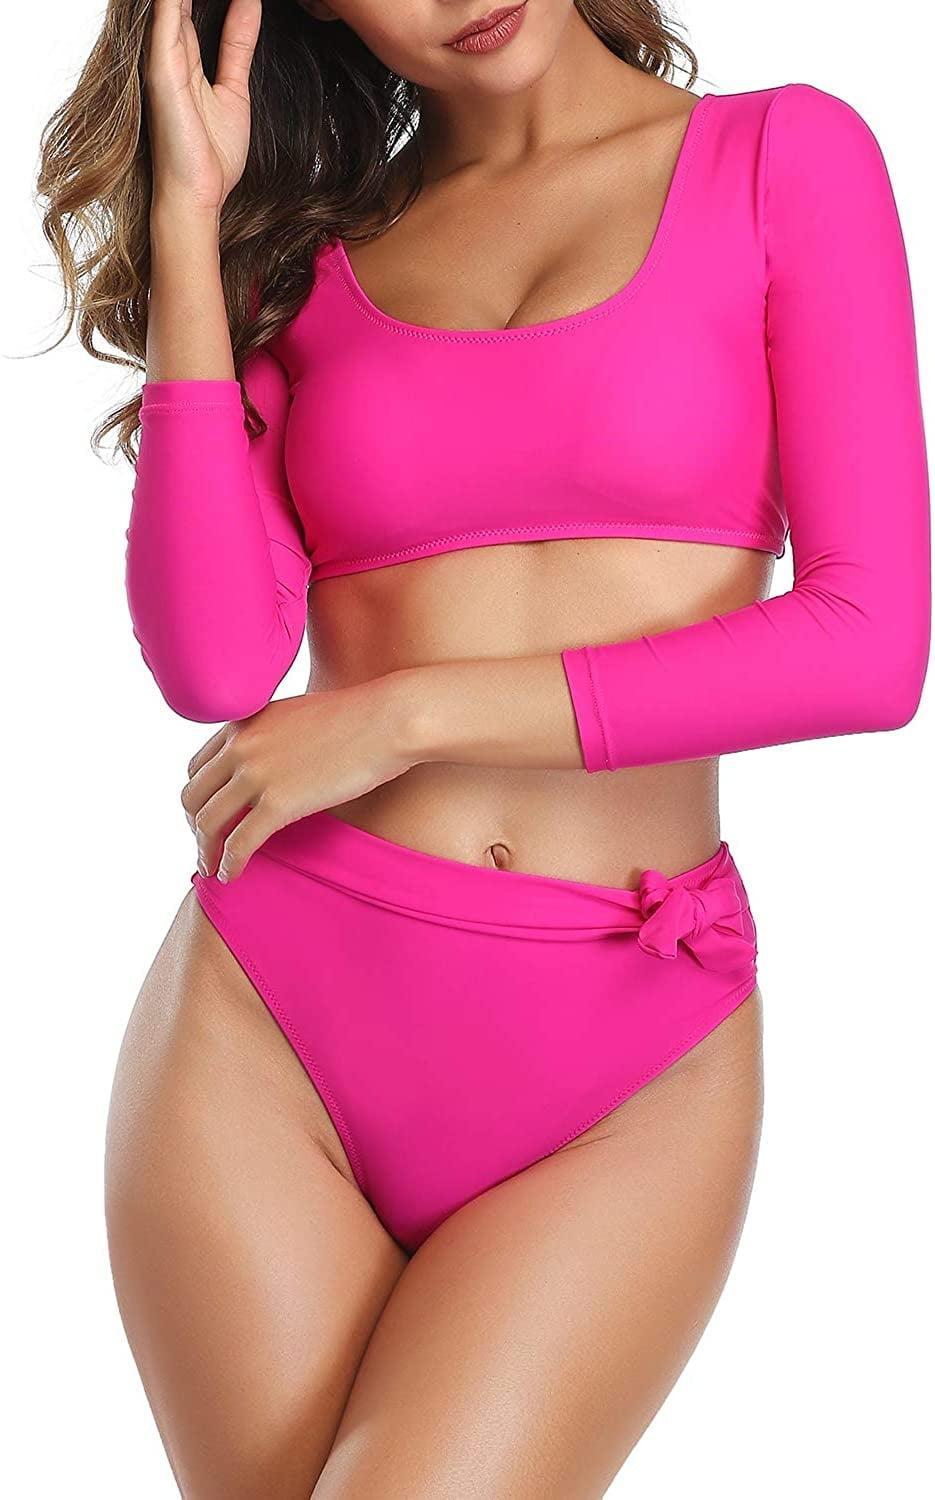 <p>Now, this <span>GirlsUpto High-Waisted Bikini Set</span> ($25) will definitely turn heads, thanks to the hot pink color and sexy silhouette.</p>